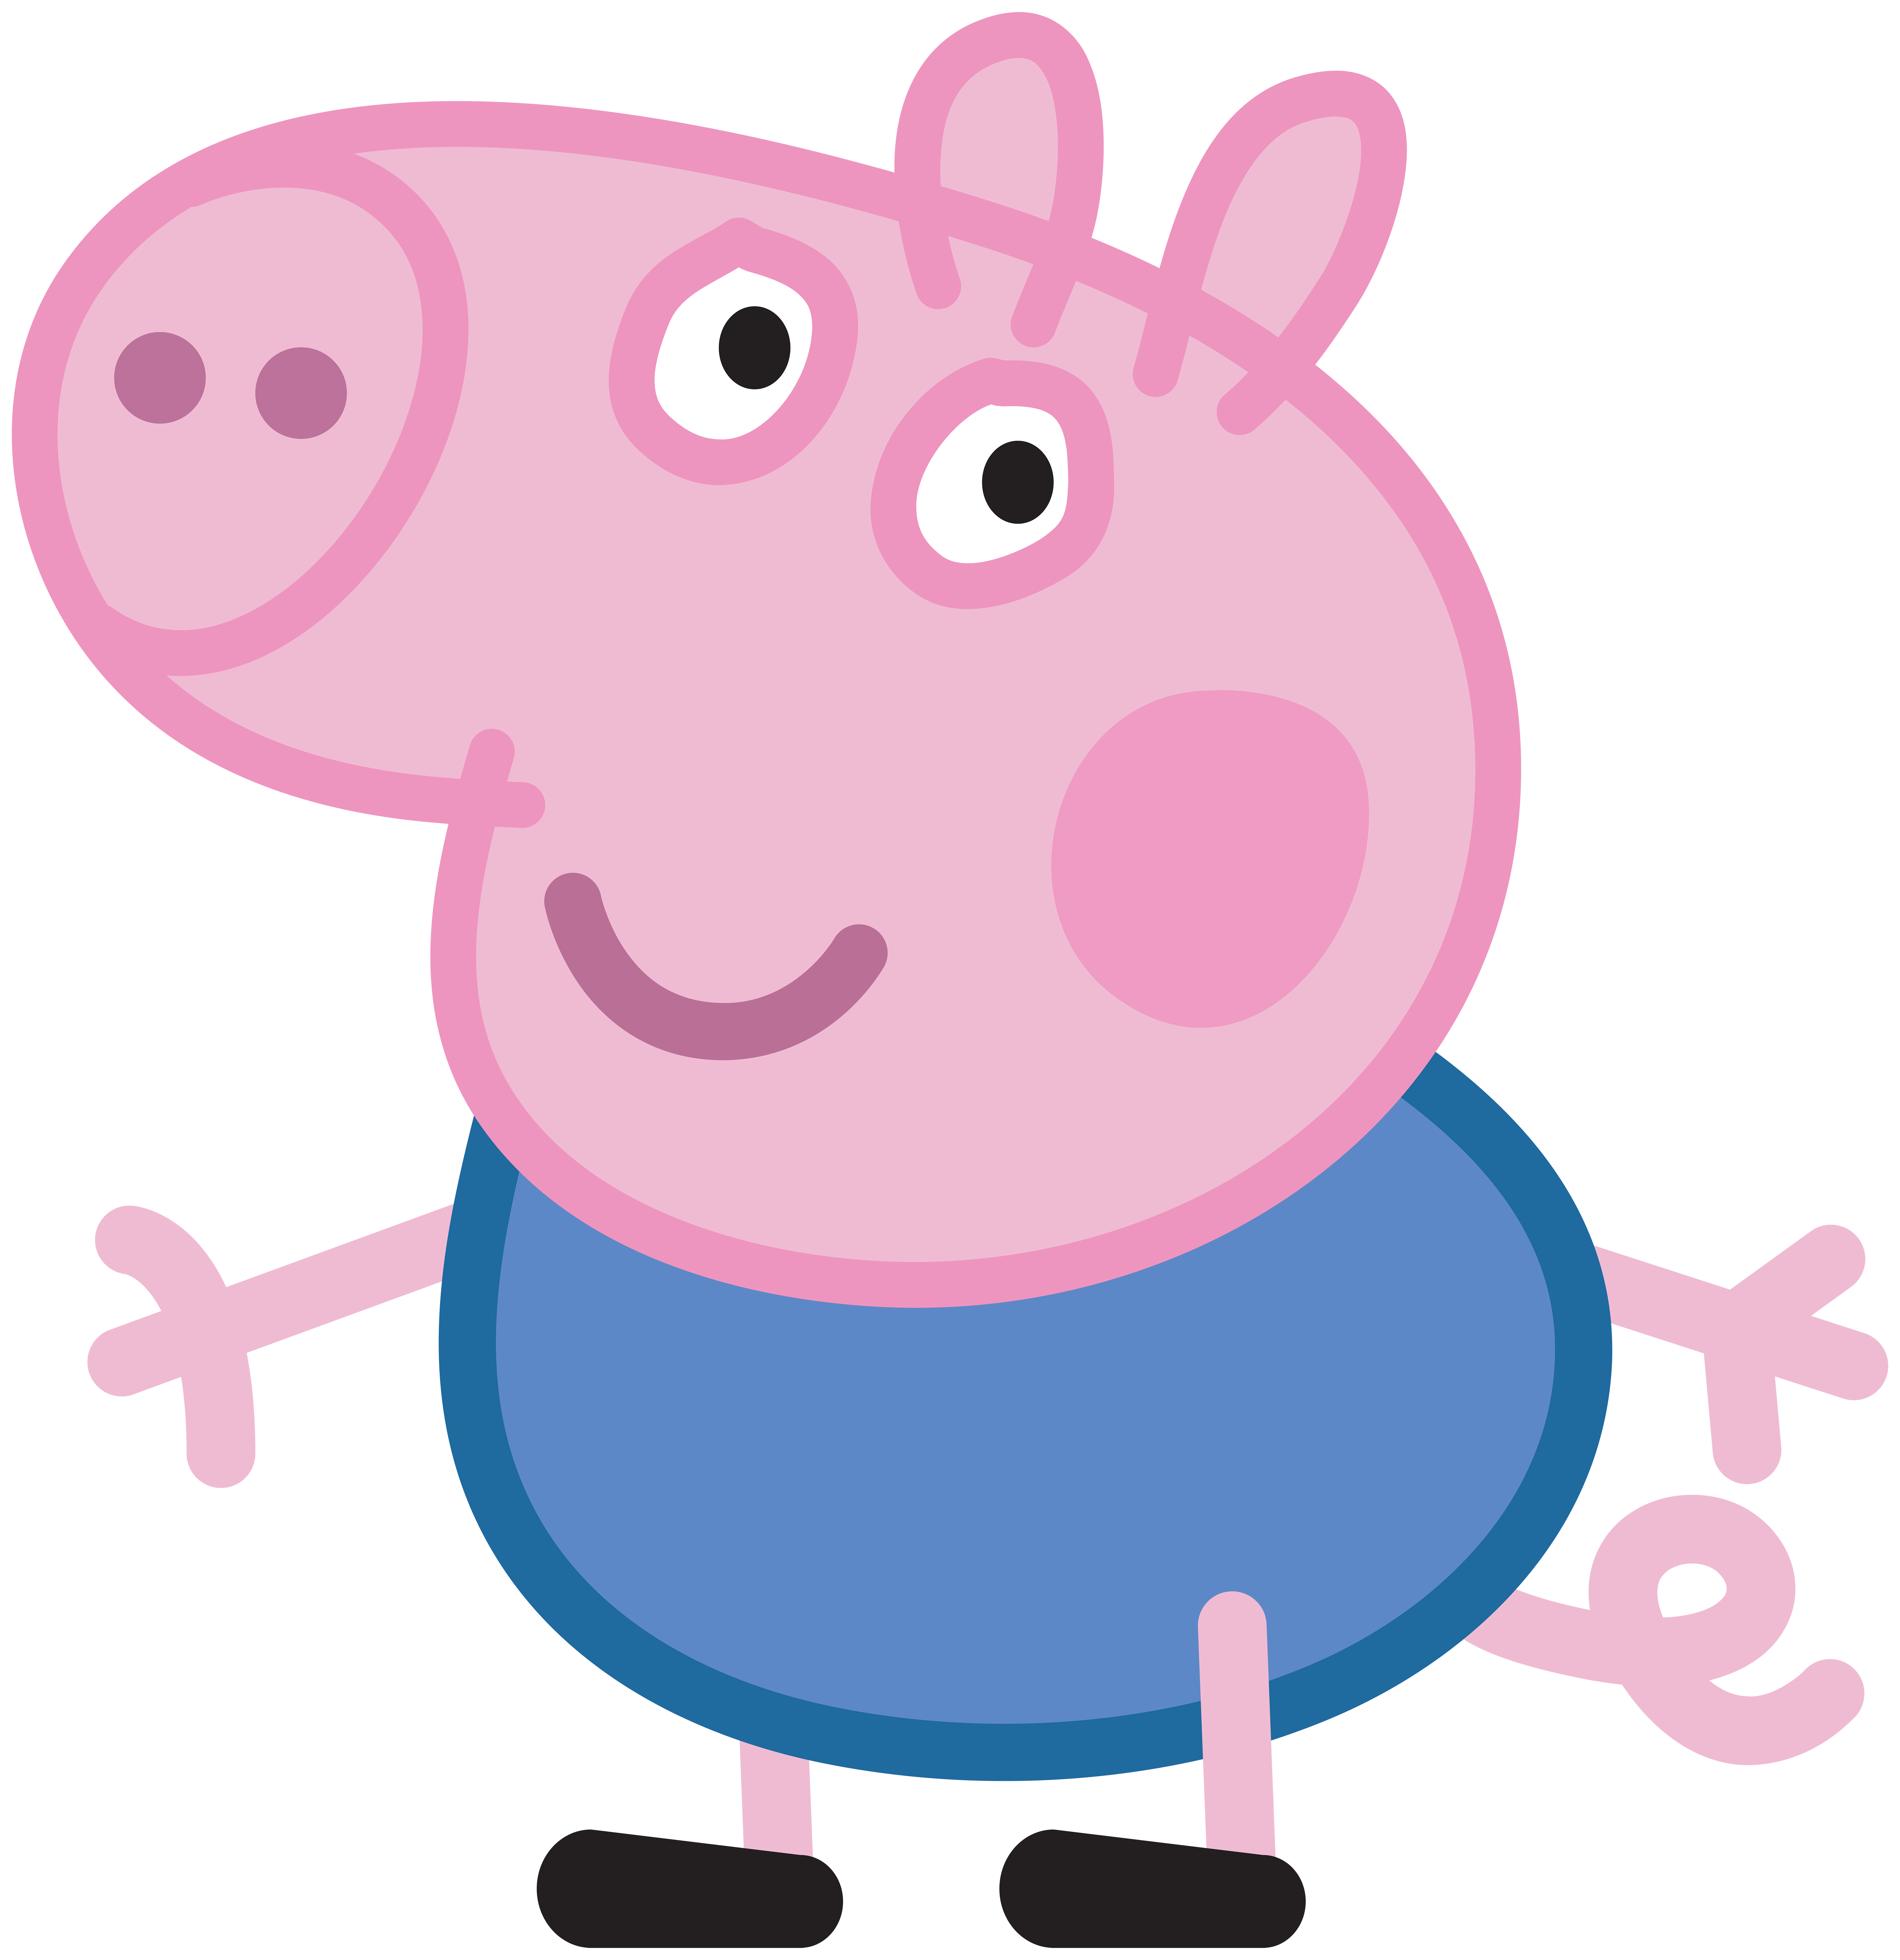 Peppa pig house clipart svg library library George_Peppa_Pig_Transparent_PNG_Image.png (7755×8000) | Party Peppa ... svg library library